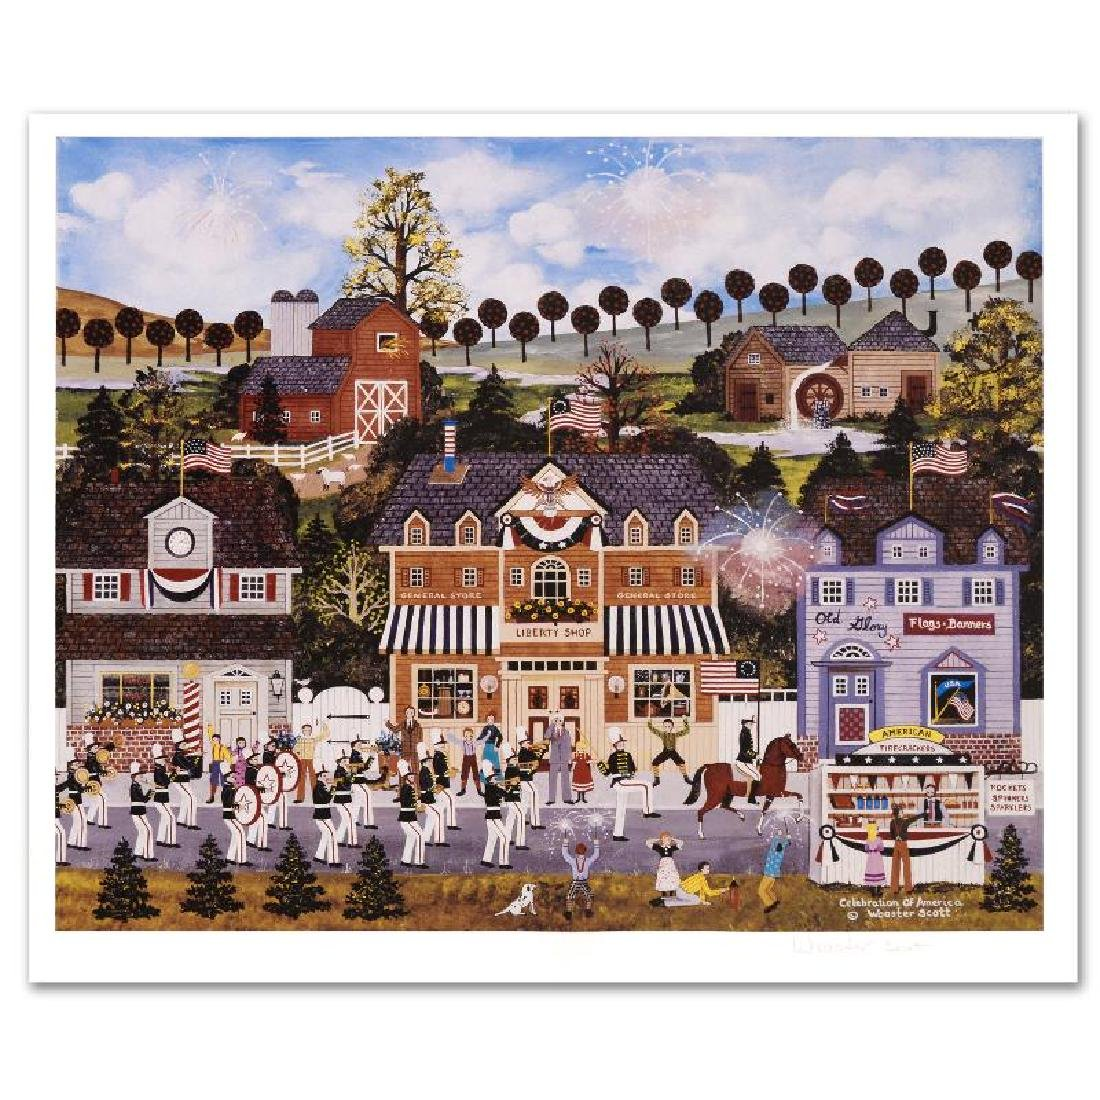 Celebration of America Limited Edition Lithograph by